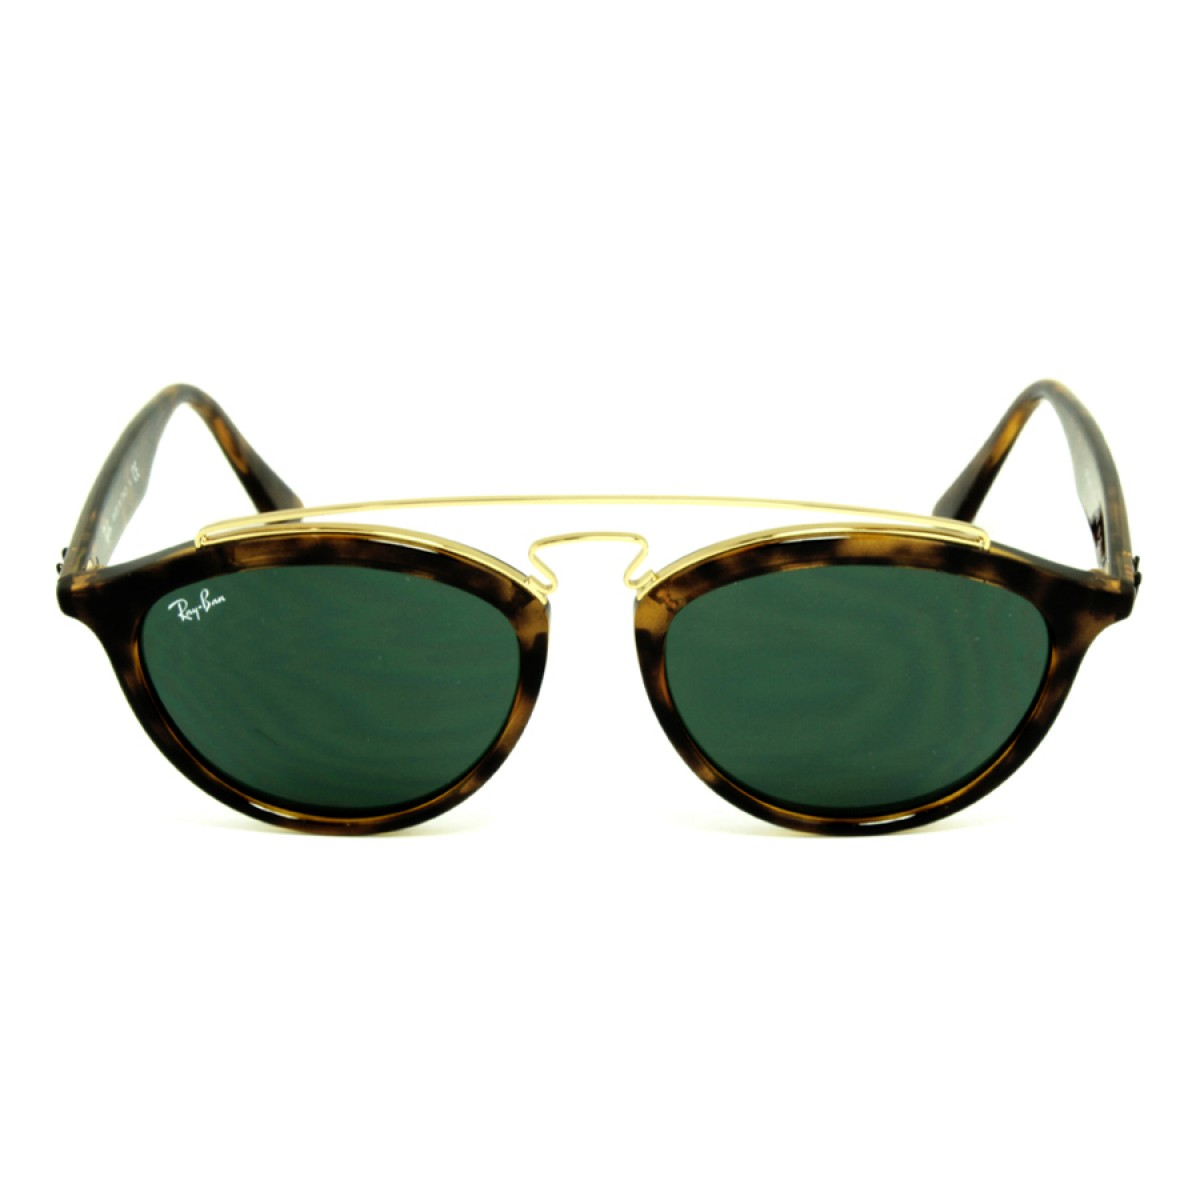 090b1983c04 Ray Ban Gatsby II Green Classic Unisex Sunglasses RB4257-710 71-53 -  Sunglasses - Fashion World